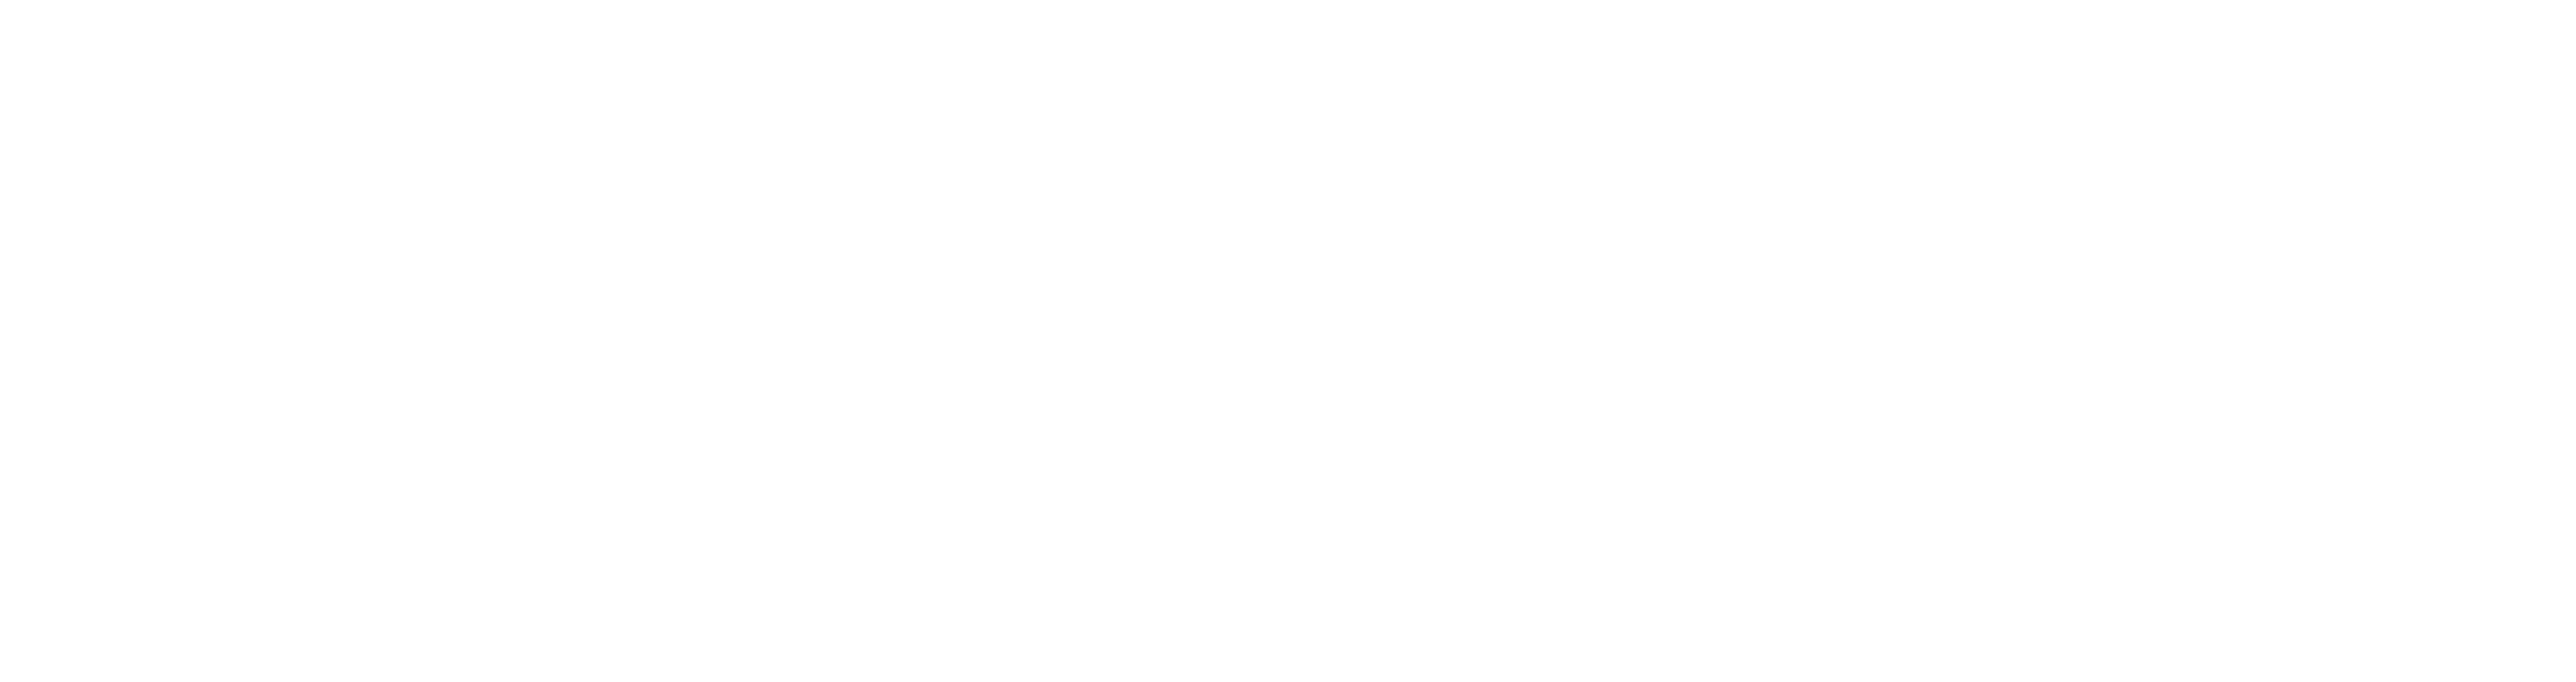 The Journey of Icarus